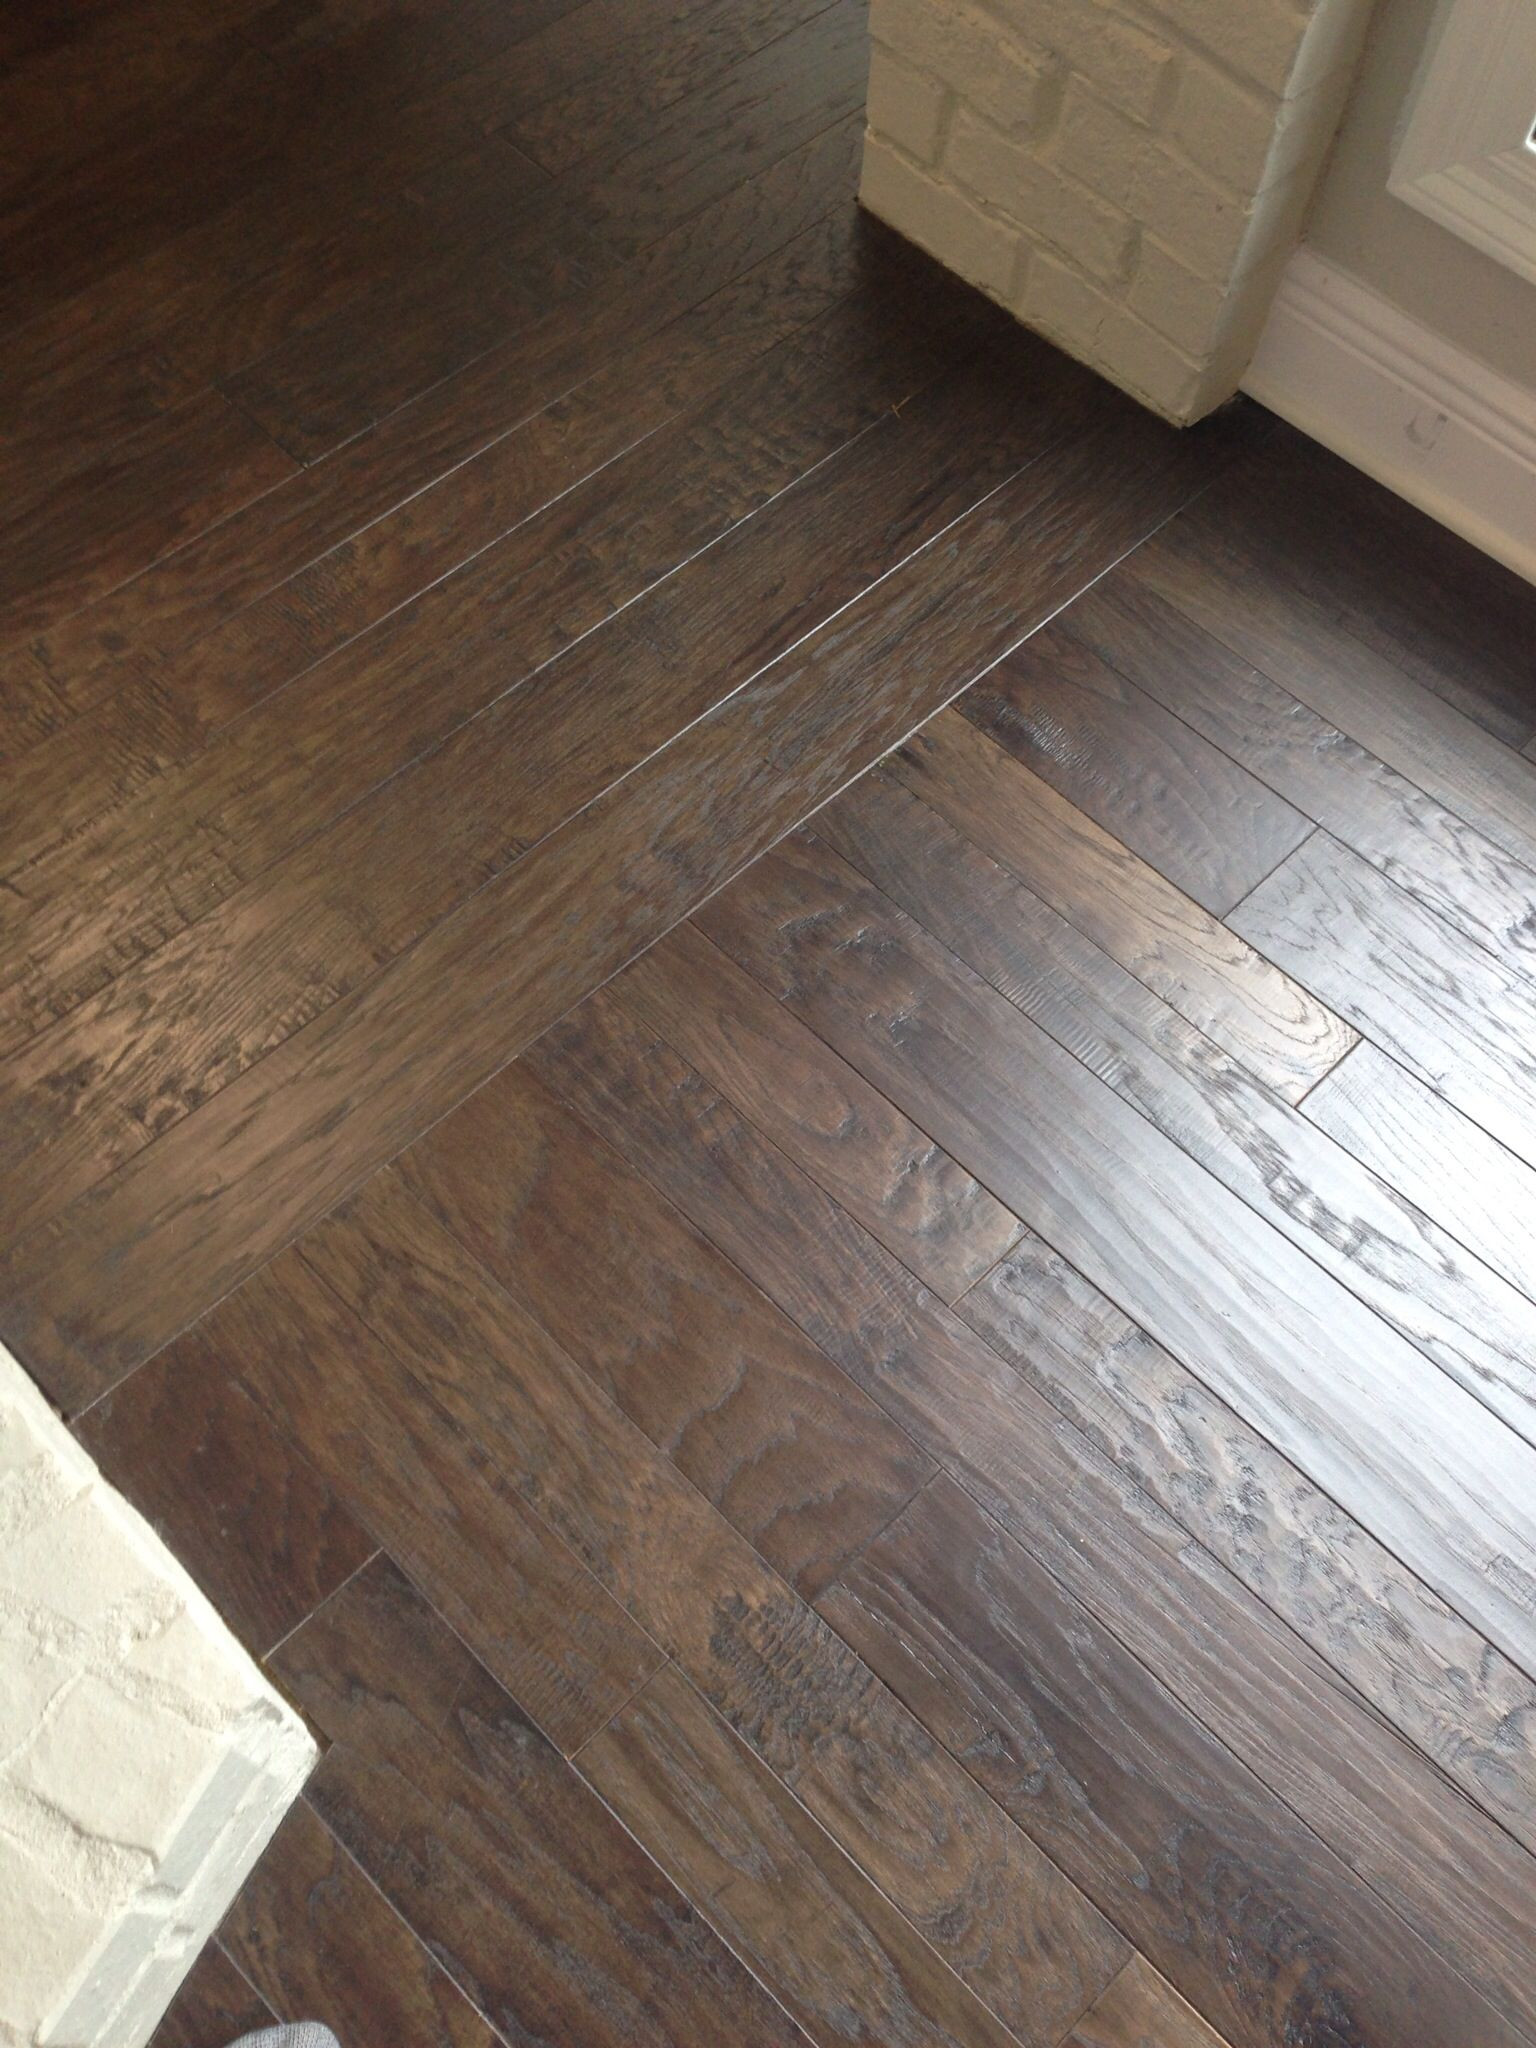 15 Spectacular Mohawk Floorcare Essentials Hardwood Laminate Floor Cleaner 2021 free download mohawk floorcare essentials hardwood laminate floor cleaner of patterned wood with a direction change transition wood floors with patterned wood with a direction change transition